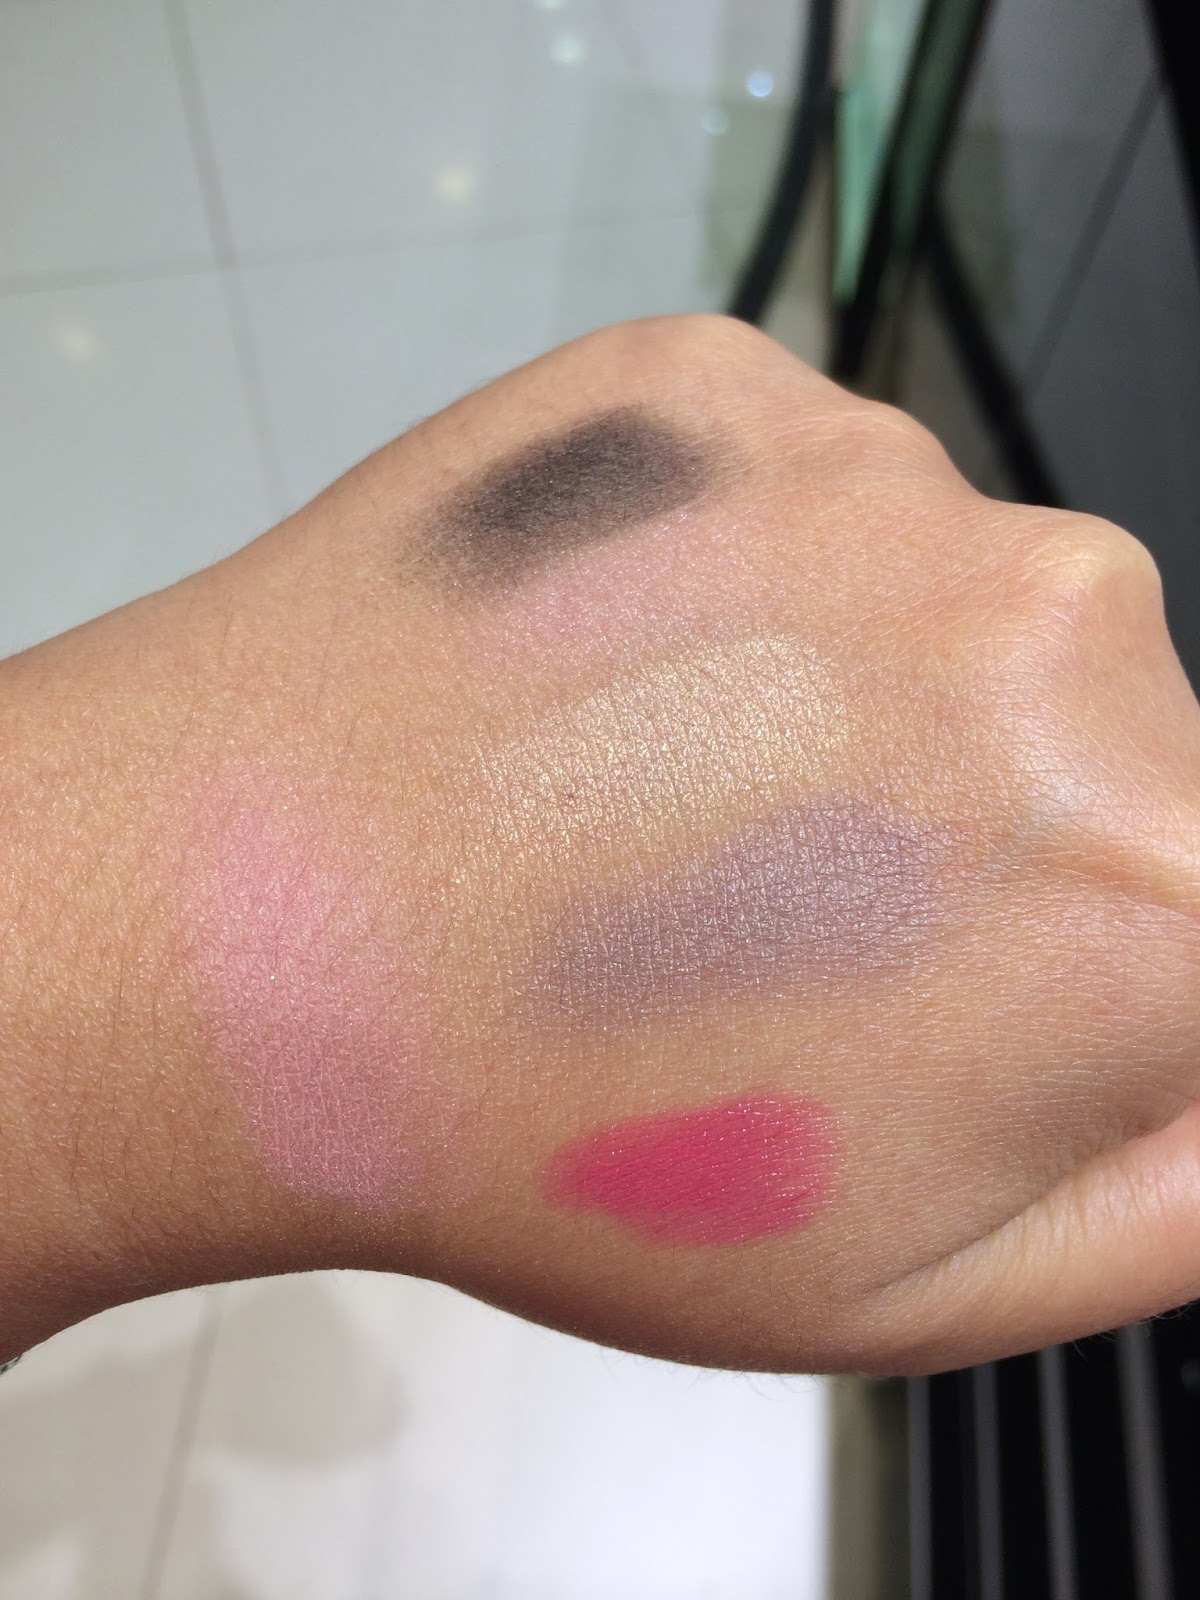 Miaka 39 s life and loves chanel quadra eye shadow in jardin zen for Jardins zens